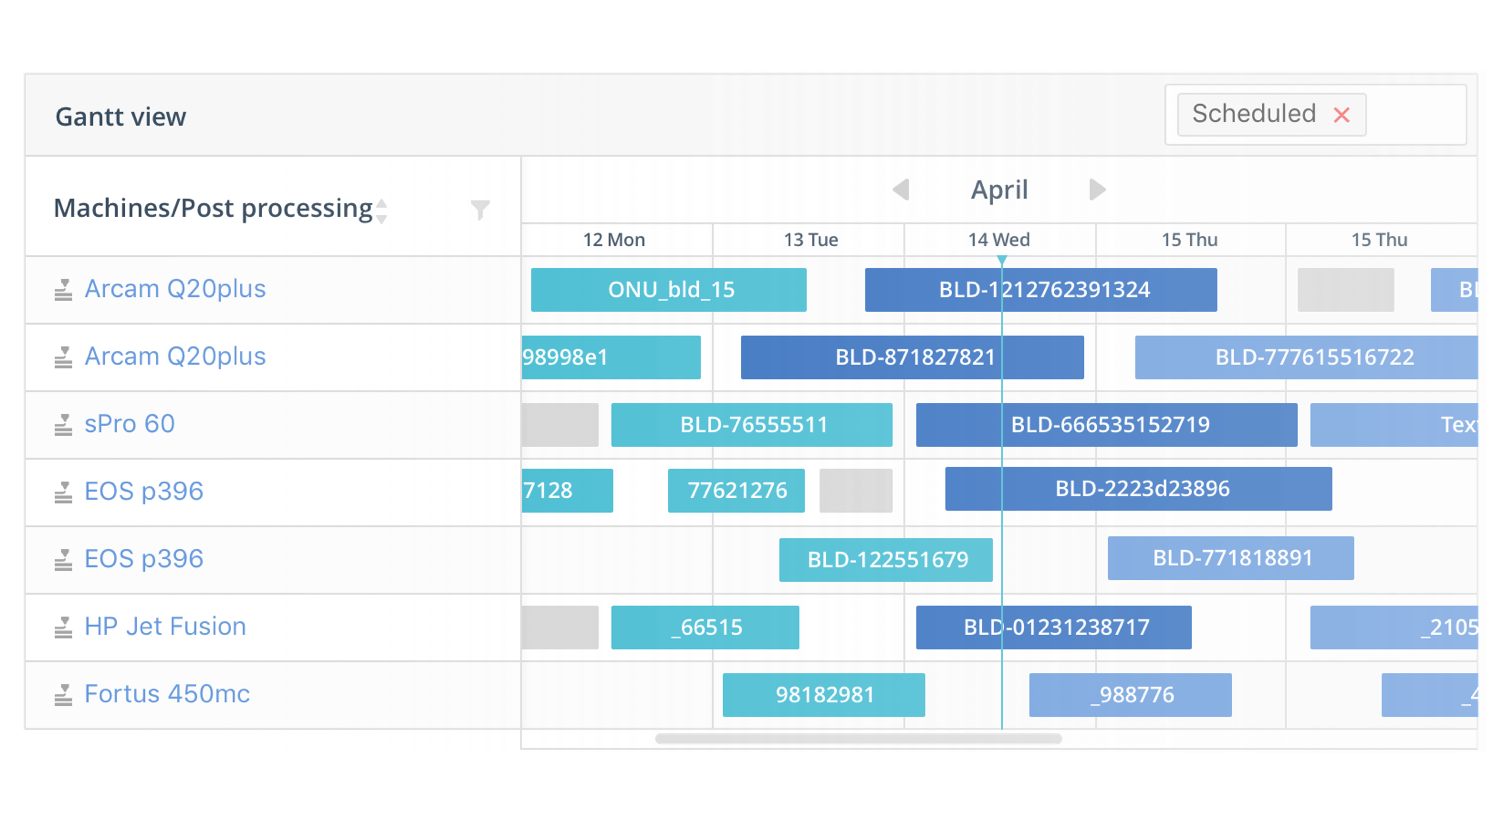 AMFG Production Automation Gantt View